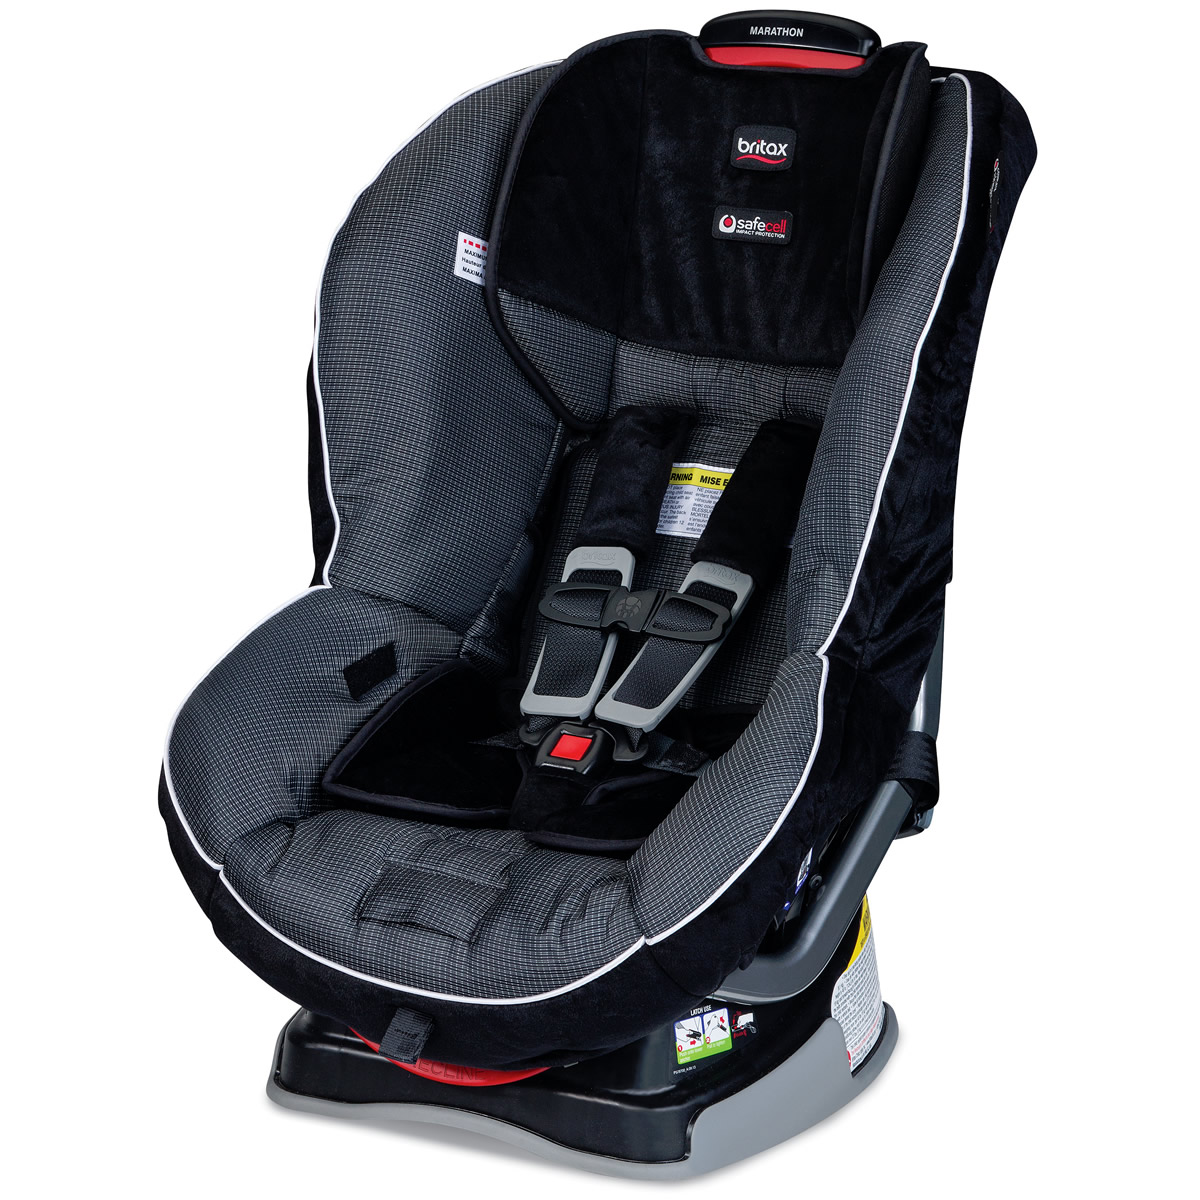 Brotax Convertible Car Seat